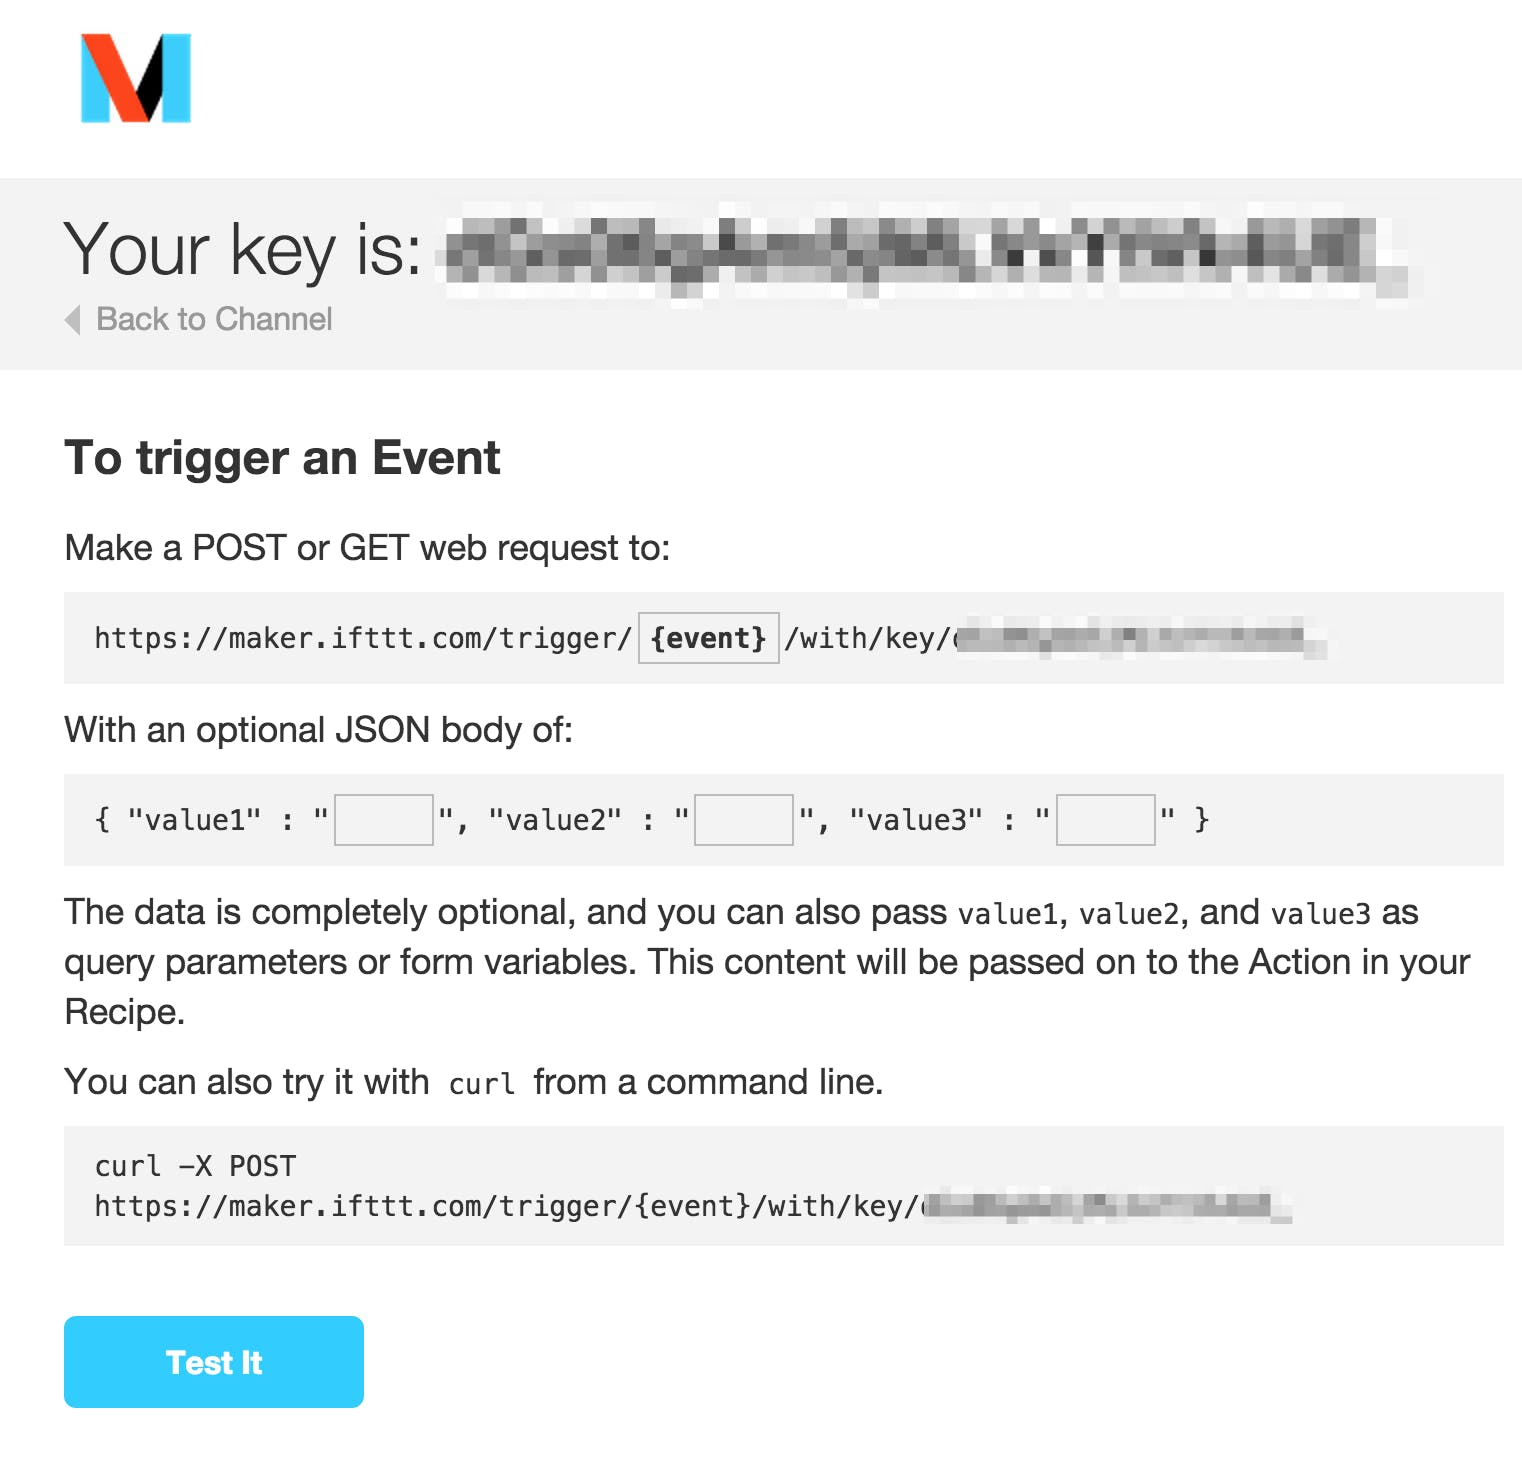 This is the format of the RESTful interface to the IFTTT Maker Channel